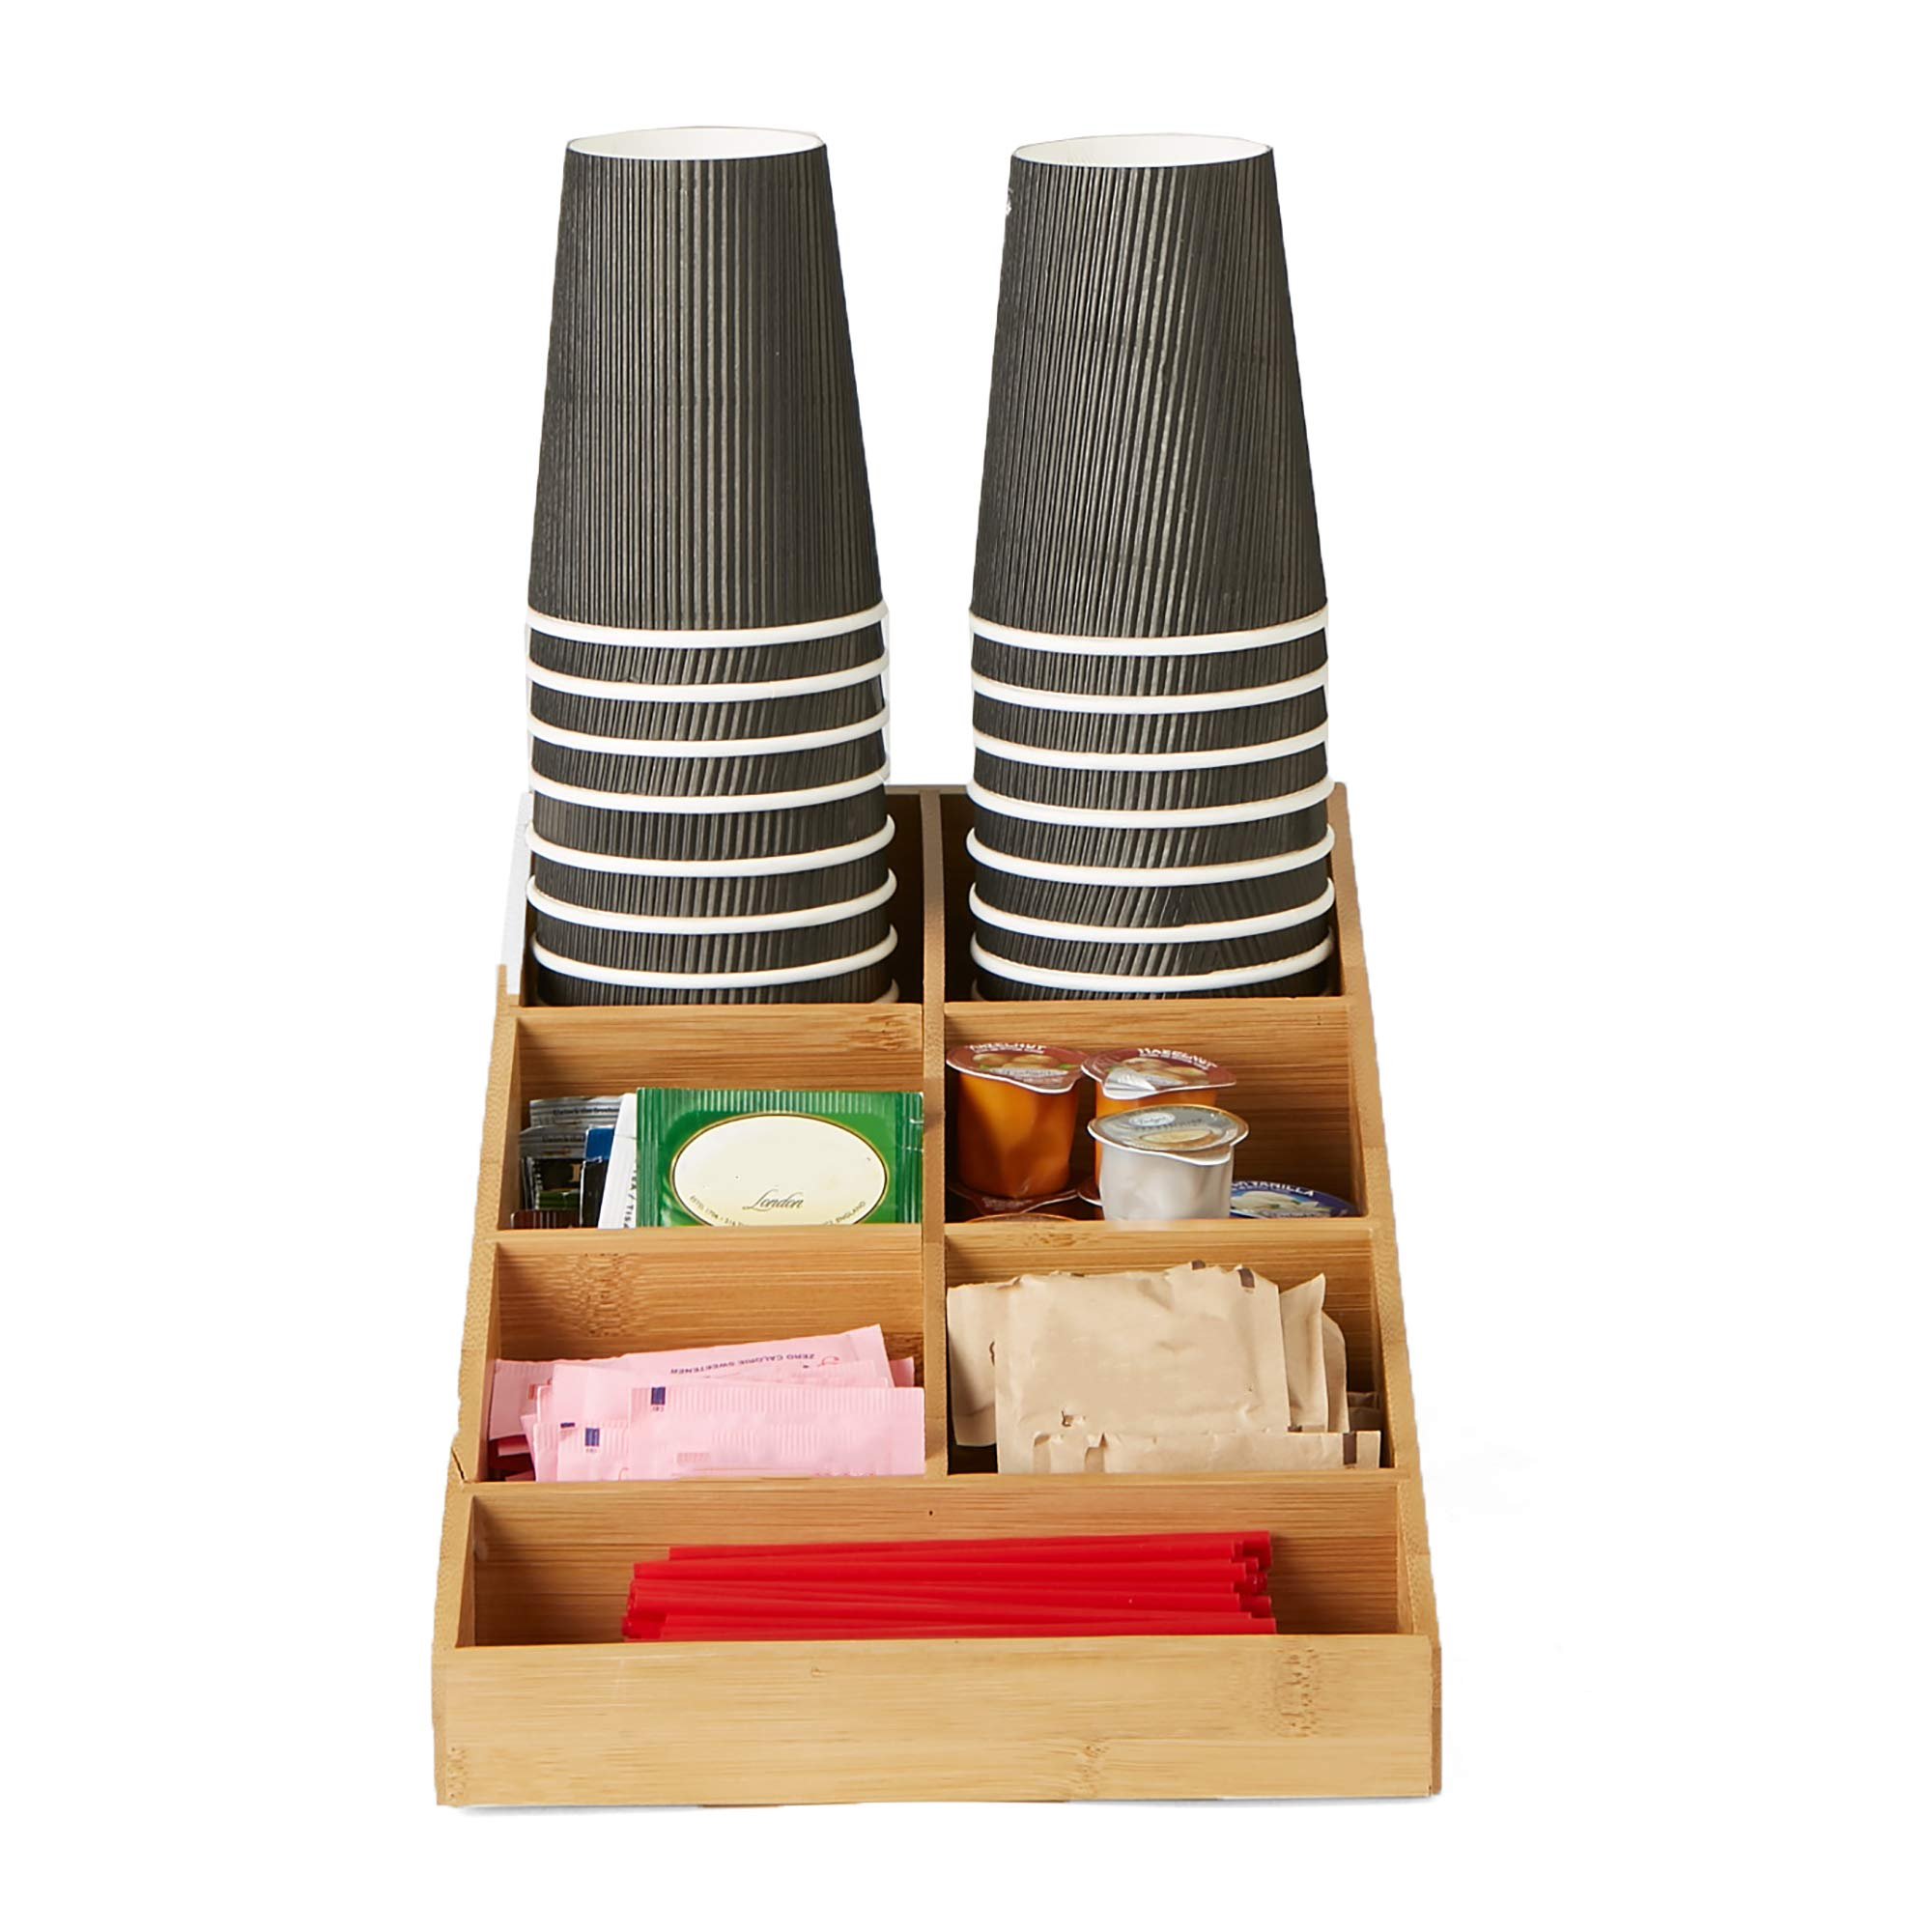 Mind Reader Coffee Condiment and Accessories Organizer, 7 Compartments, Brown by Mind Reader (Image #3)